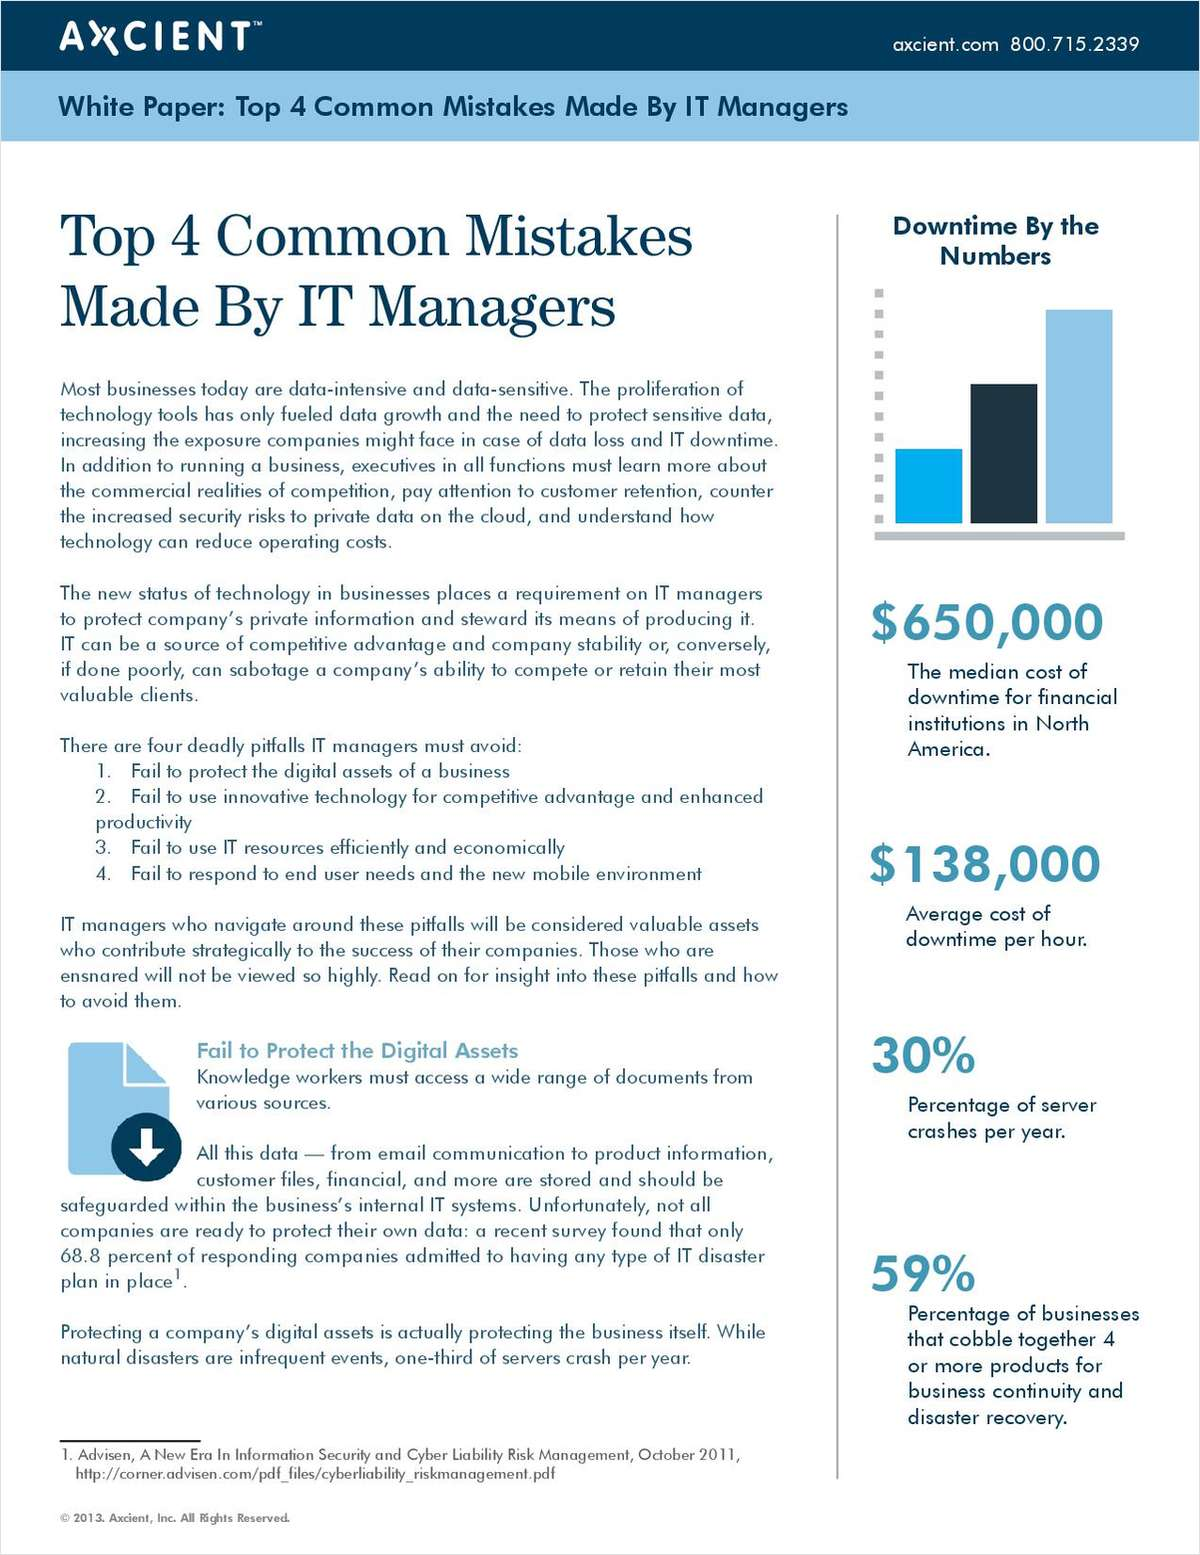 Top 4 Common Mistakes Made By IT Managers